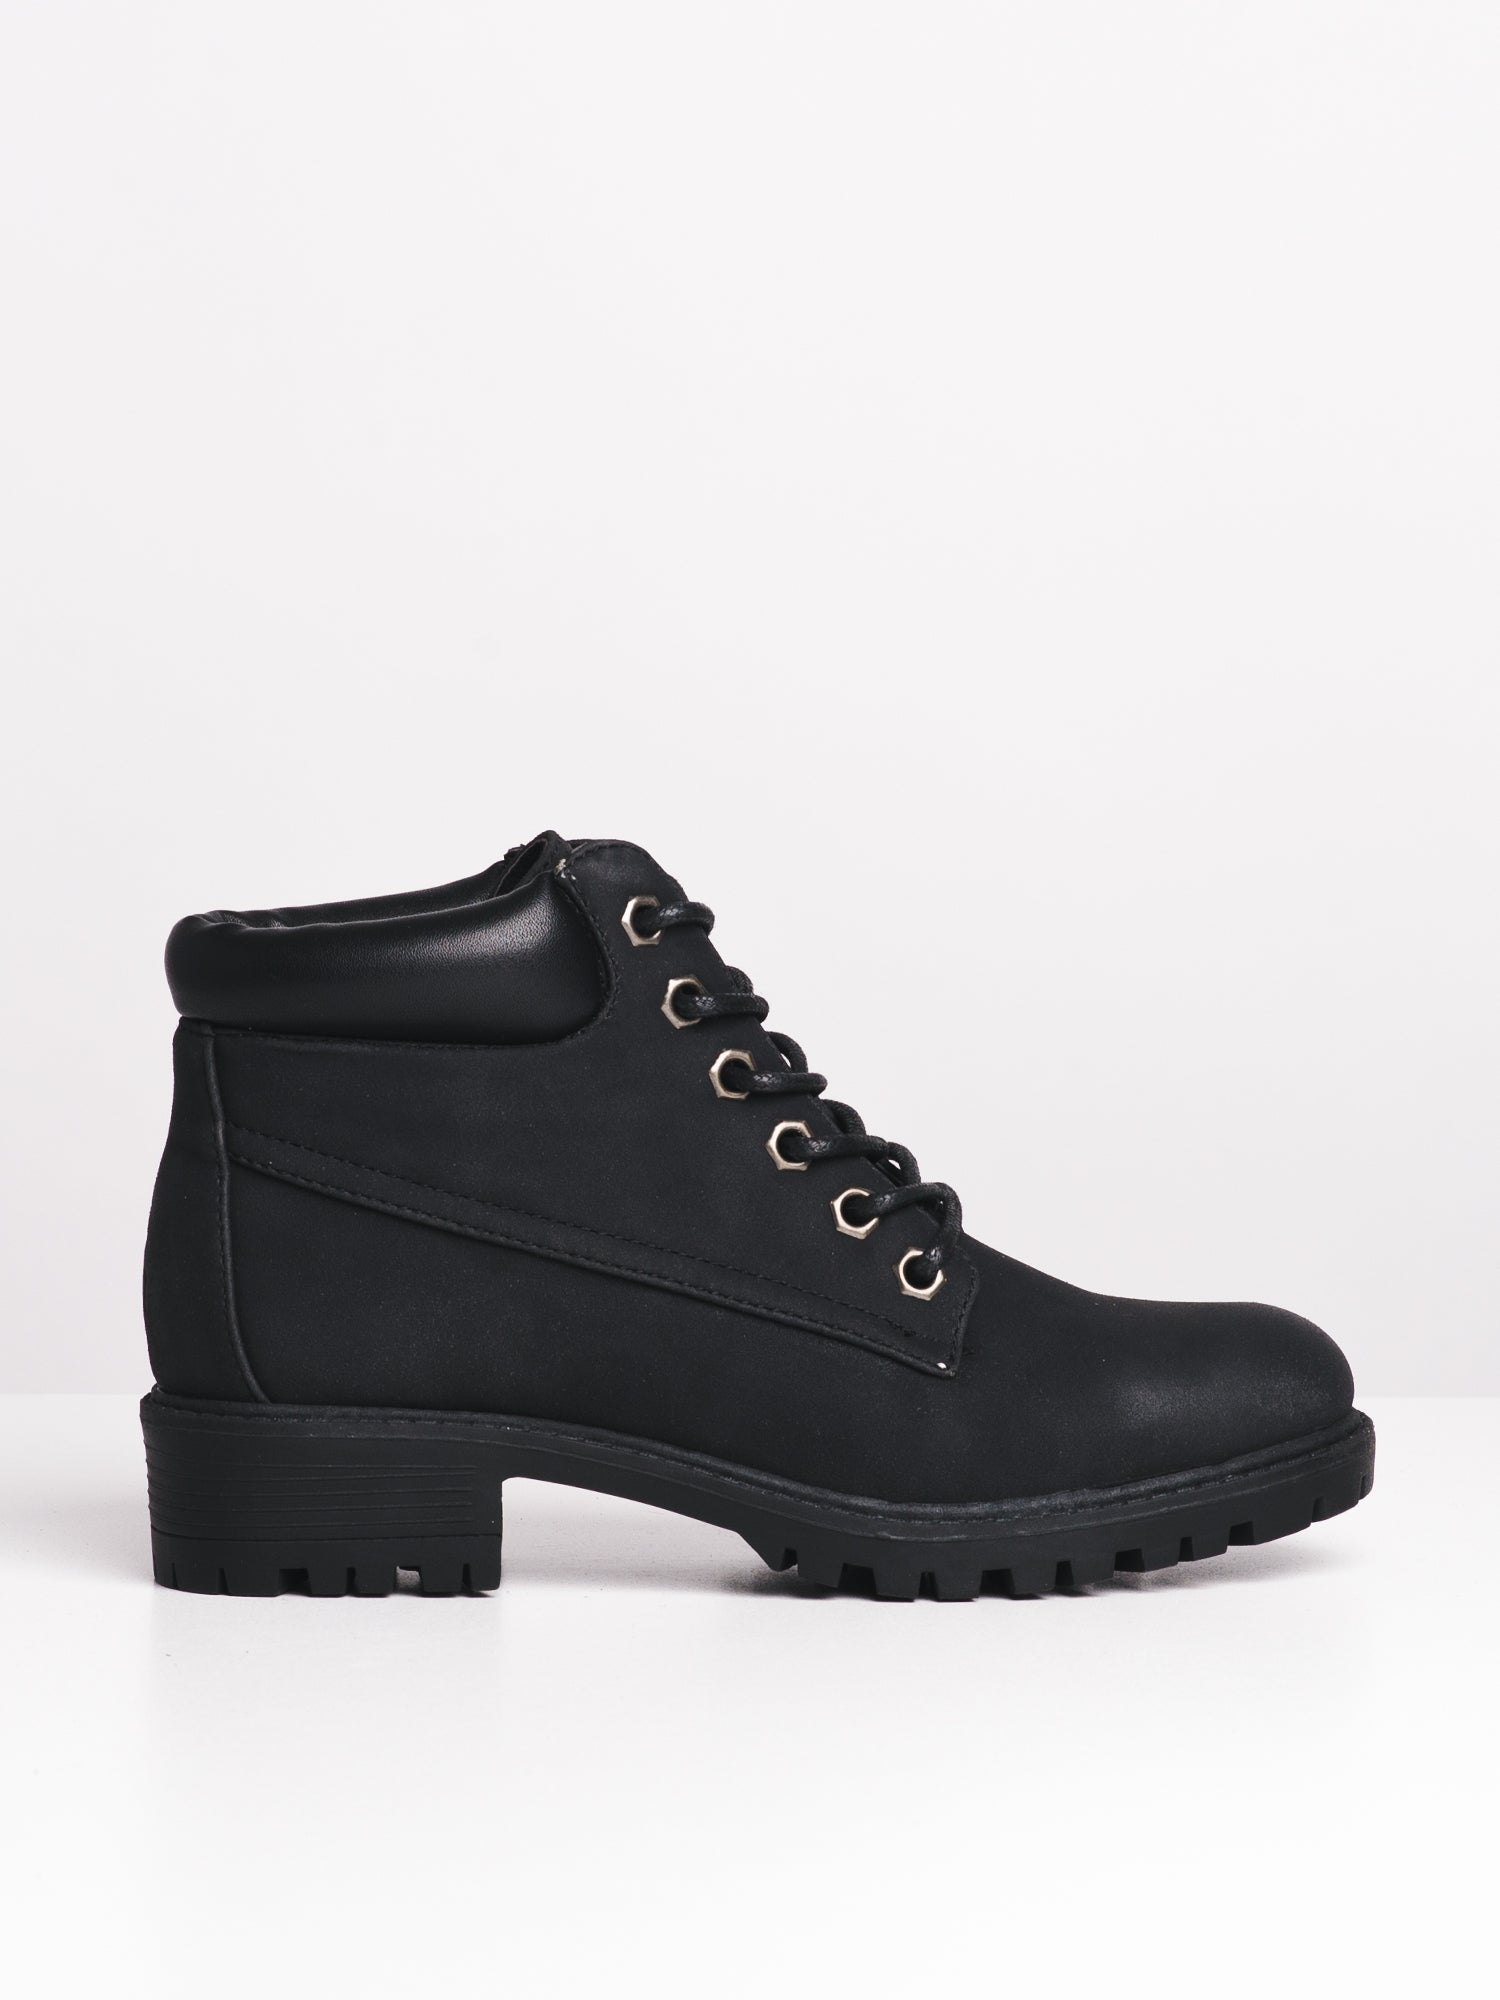 DLG Izzy Womens Vegan Leather Lace up Boot with Leather Stacked Heel /& Lug Tread Rubber Sole